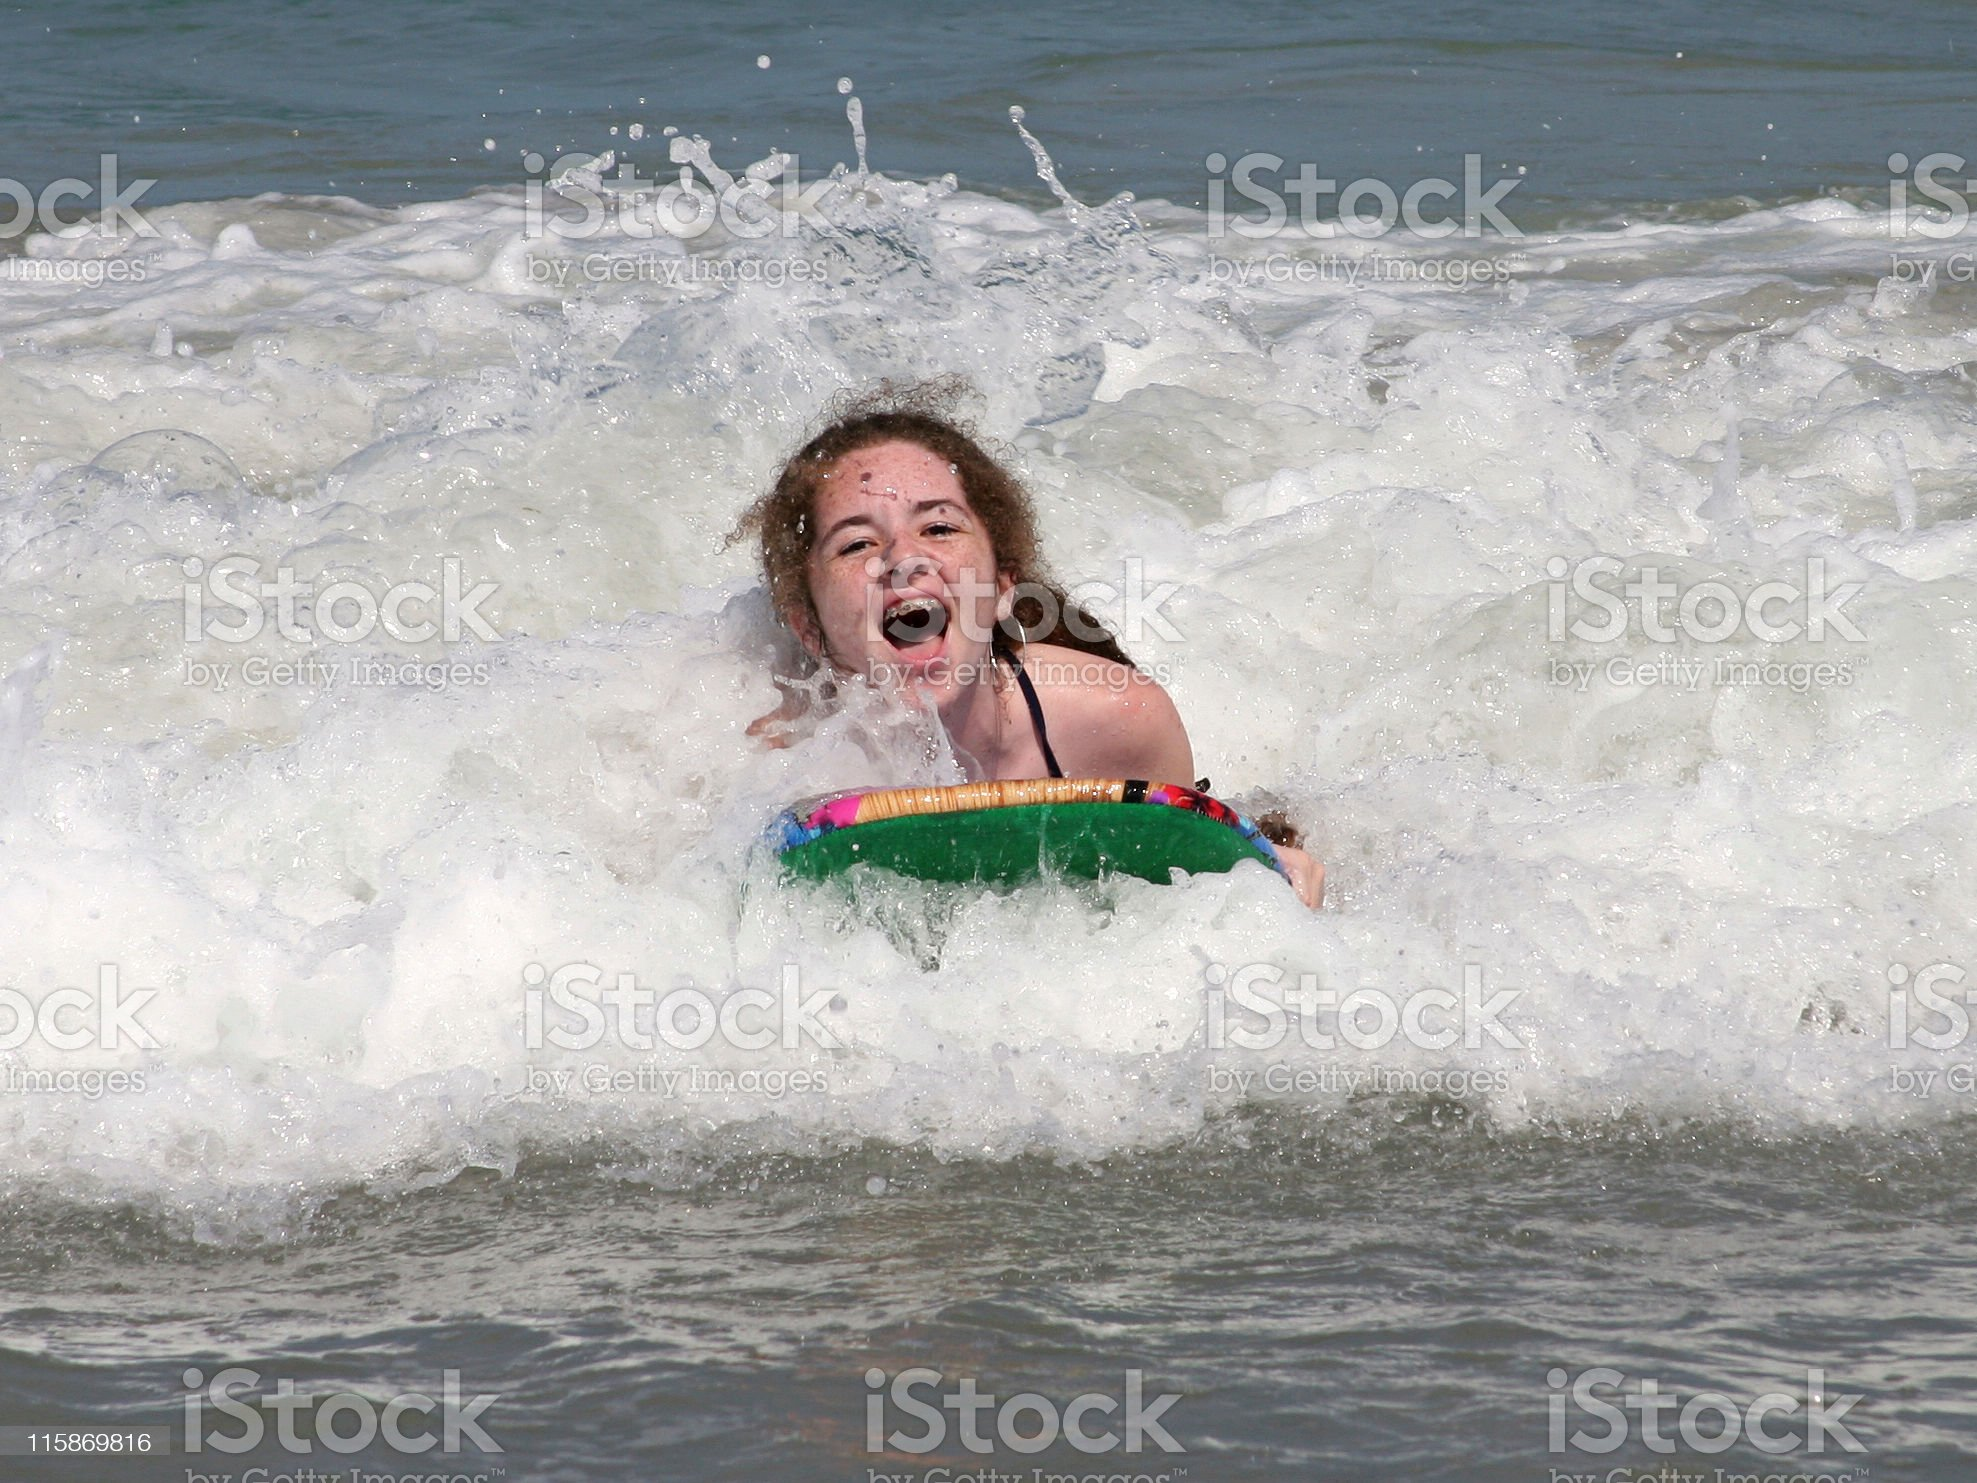 Riding the Waves royalty-free stock photo